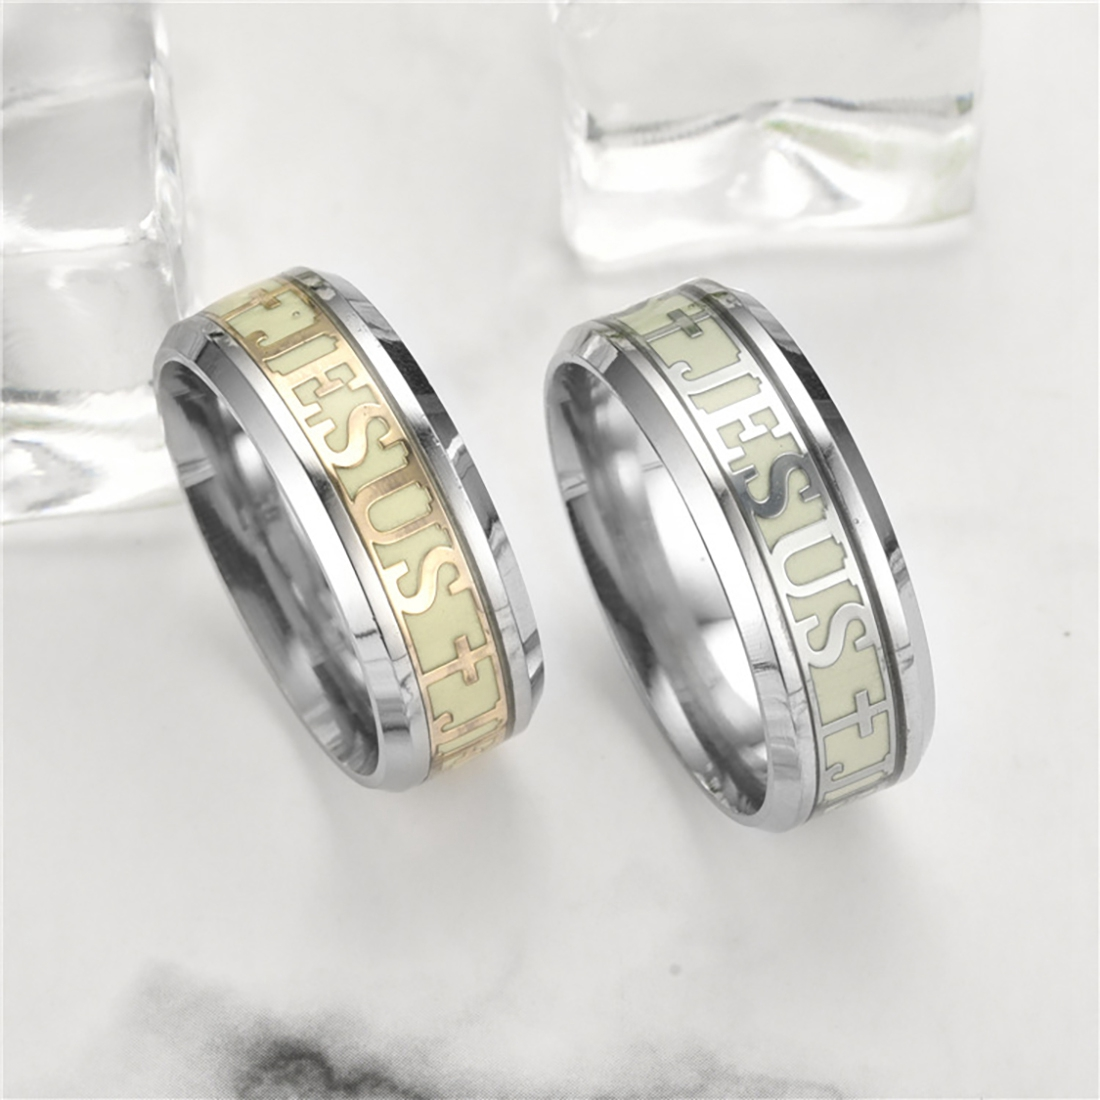 Luminous Jesus Christ Ring Stainless Steel Cross Ring Glowing In The Dark Jewelry For Women And Men Engagement Ring